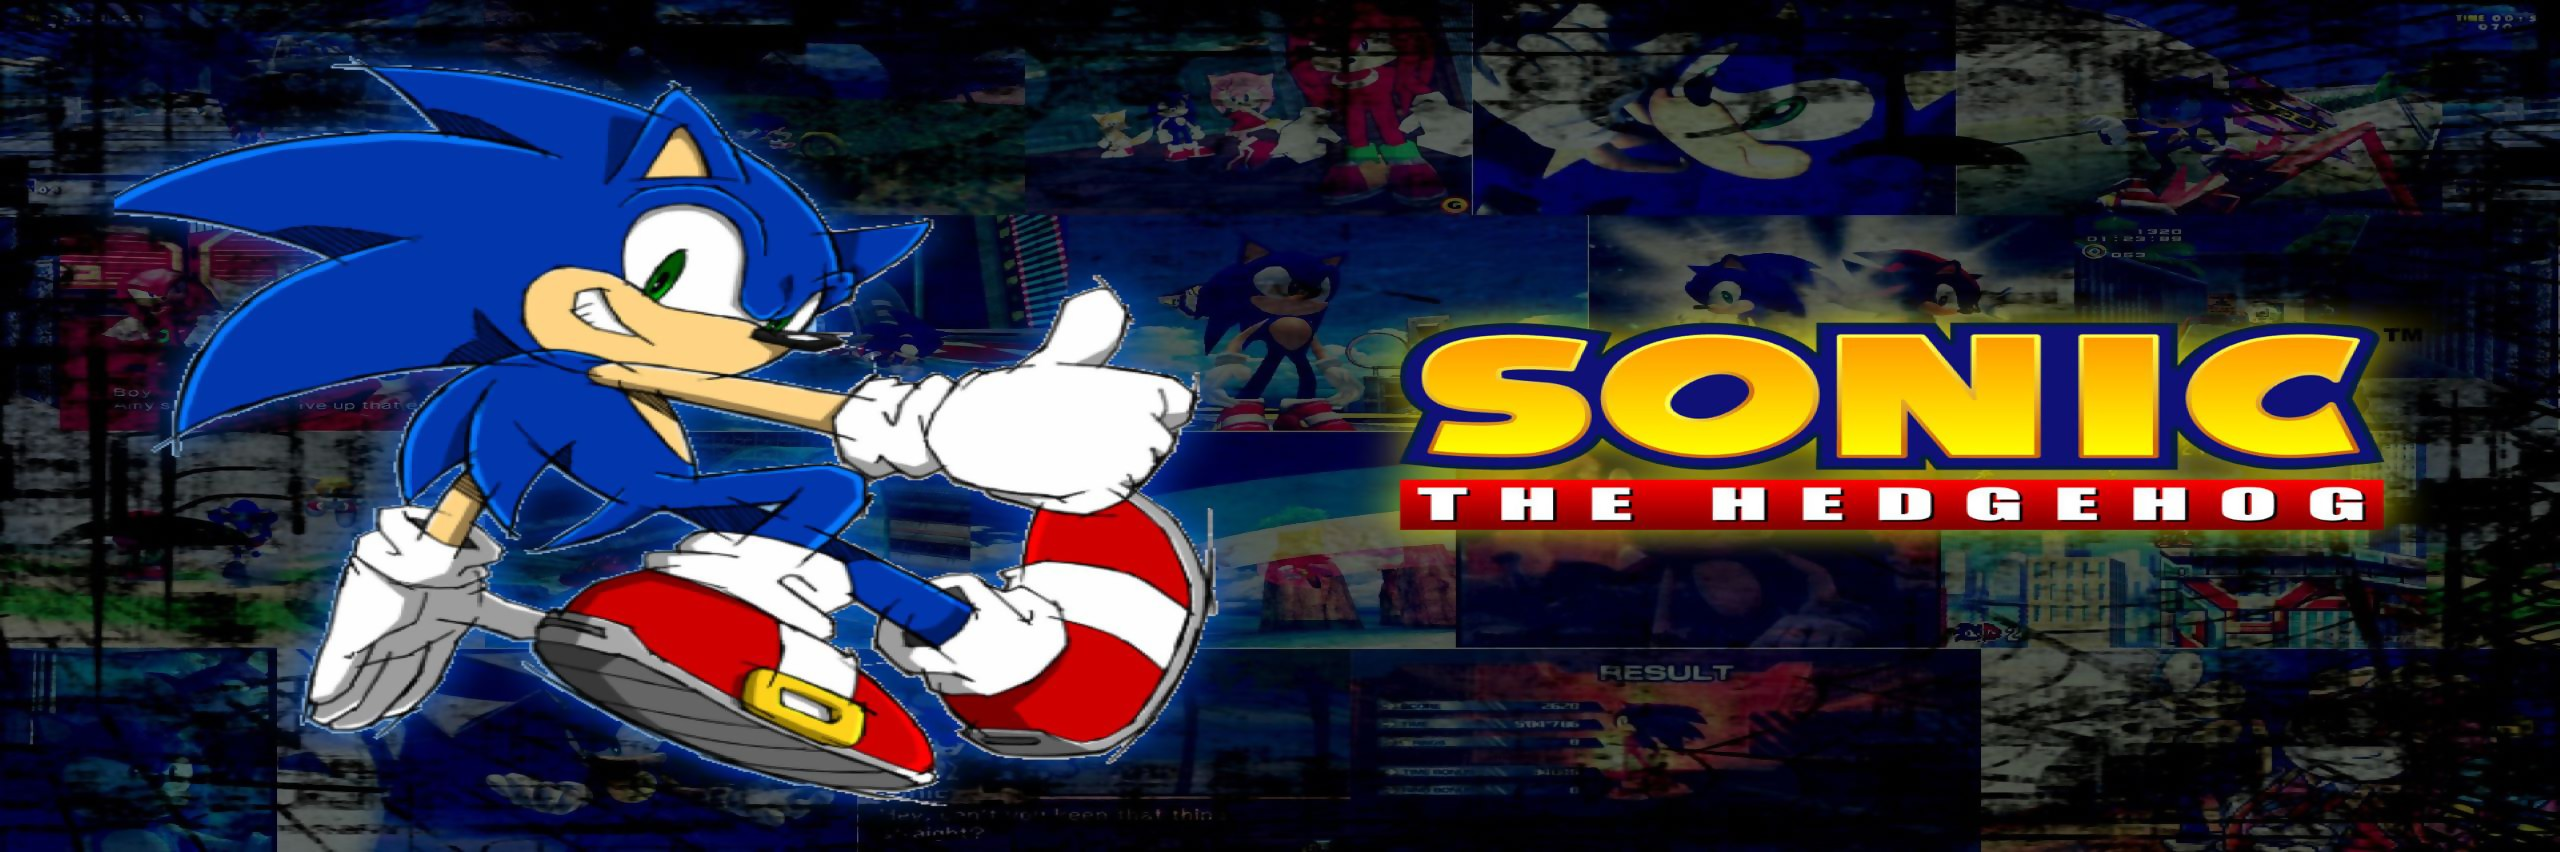 Sonic le film Streaming vf Gratuit Film Complet